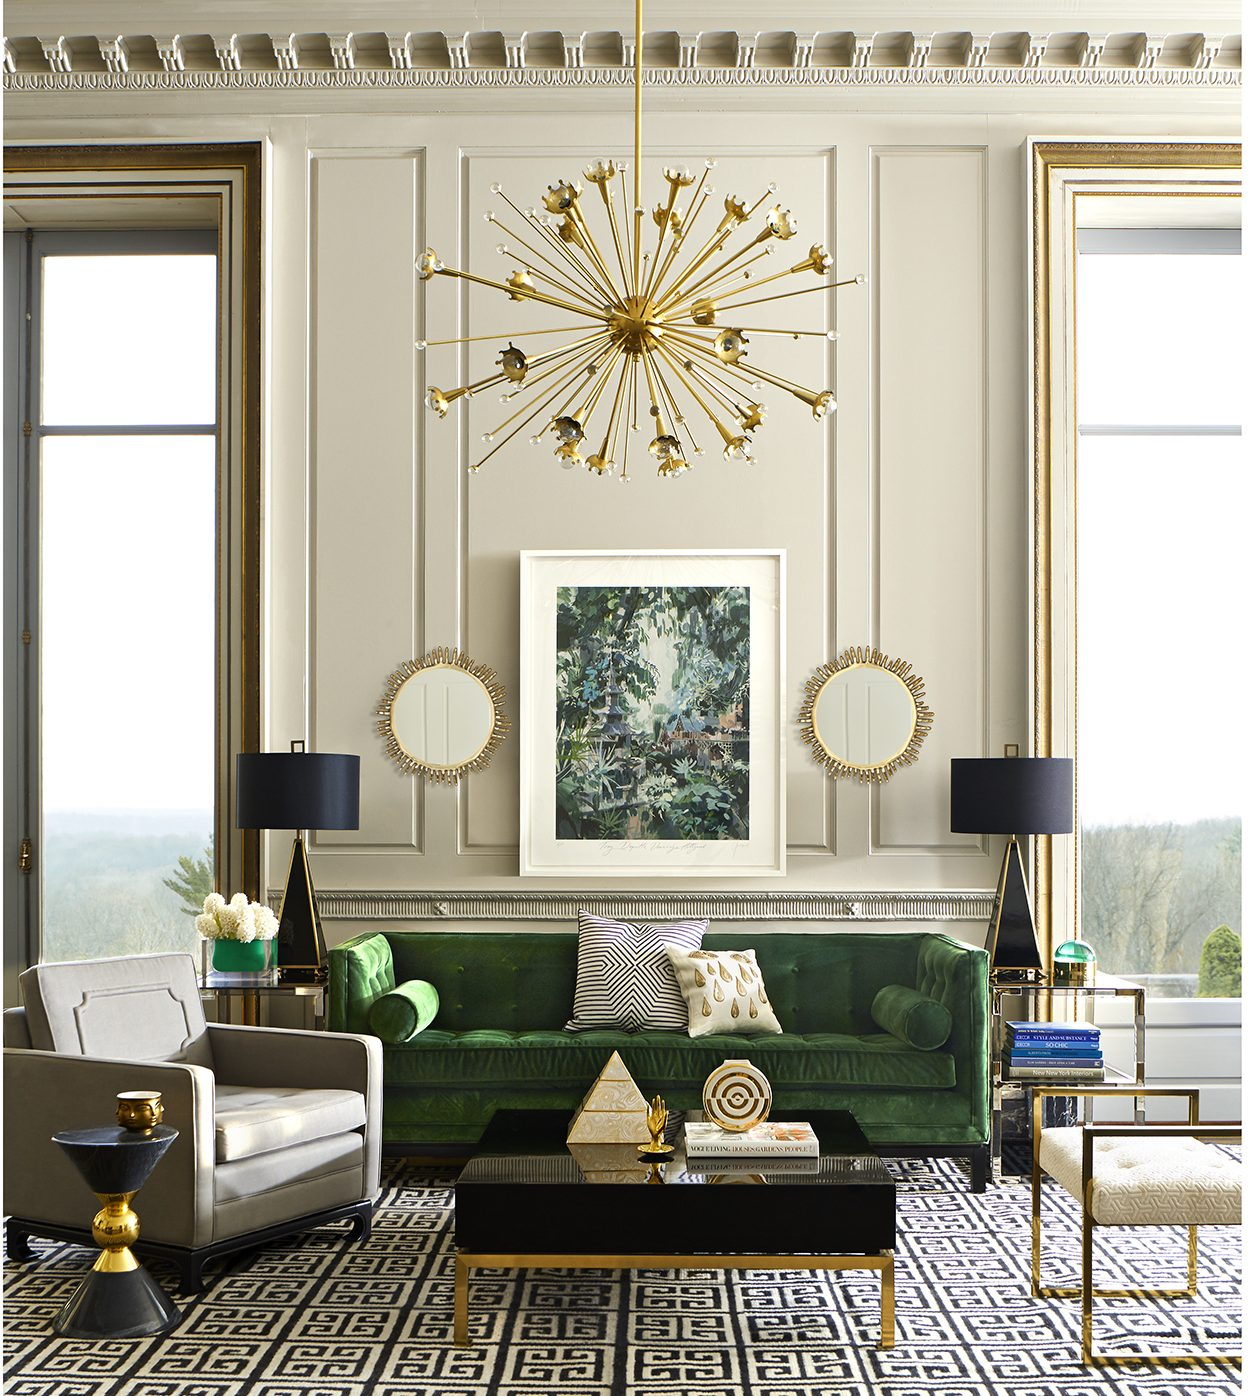 10 Cheerful Winter Living Rooms by Jonathan Adler  winter living rooms 10 Cheerful Winter Living Rooms by Jonathan Adler 10 Cheerful Winter Living Rooms by Jonathan Adler5 e1474882634529